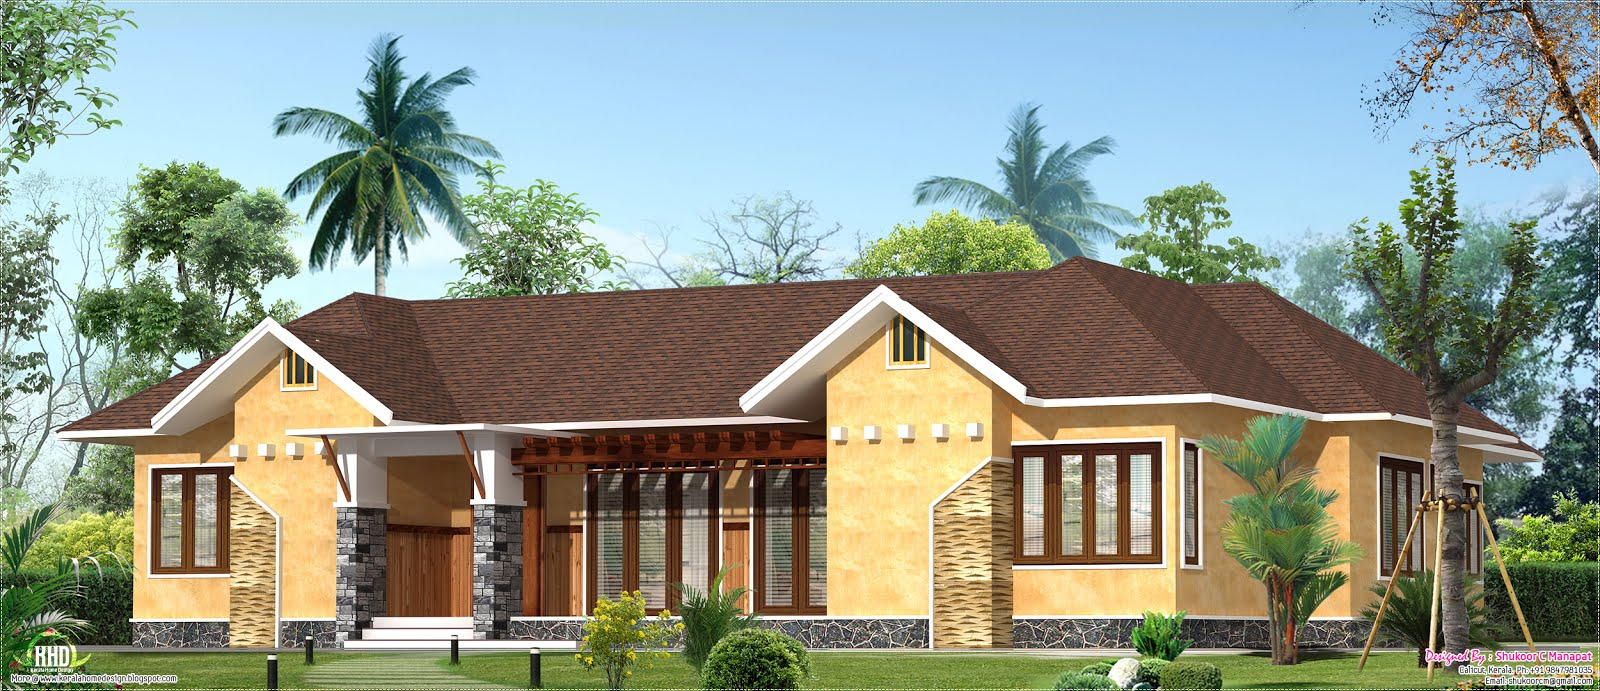 Eco friendly single floor kerala villa house design plans for Earth friendly home designs